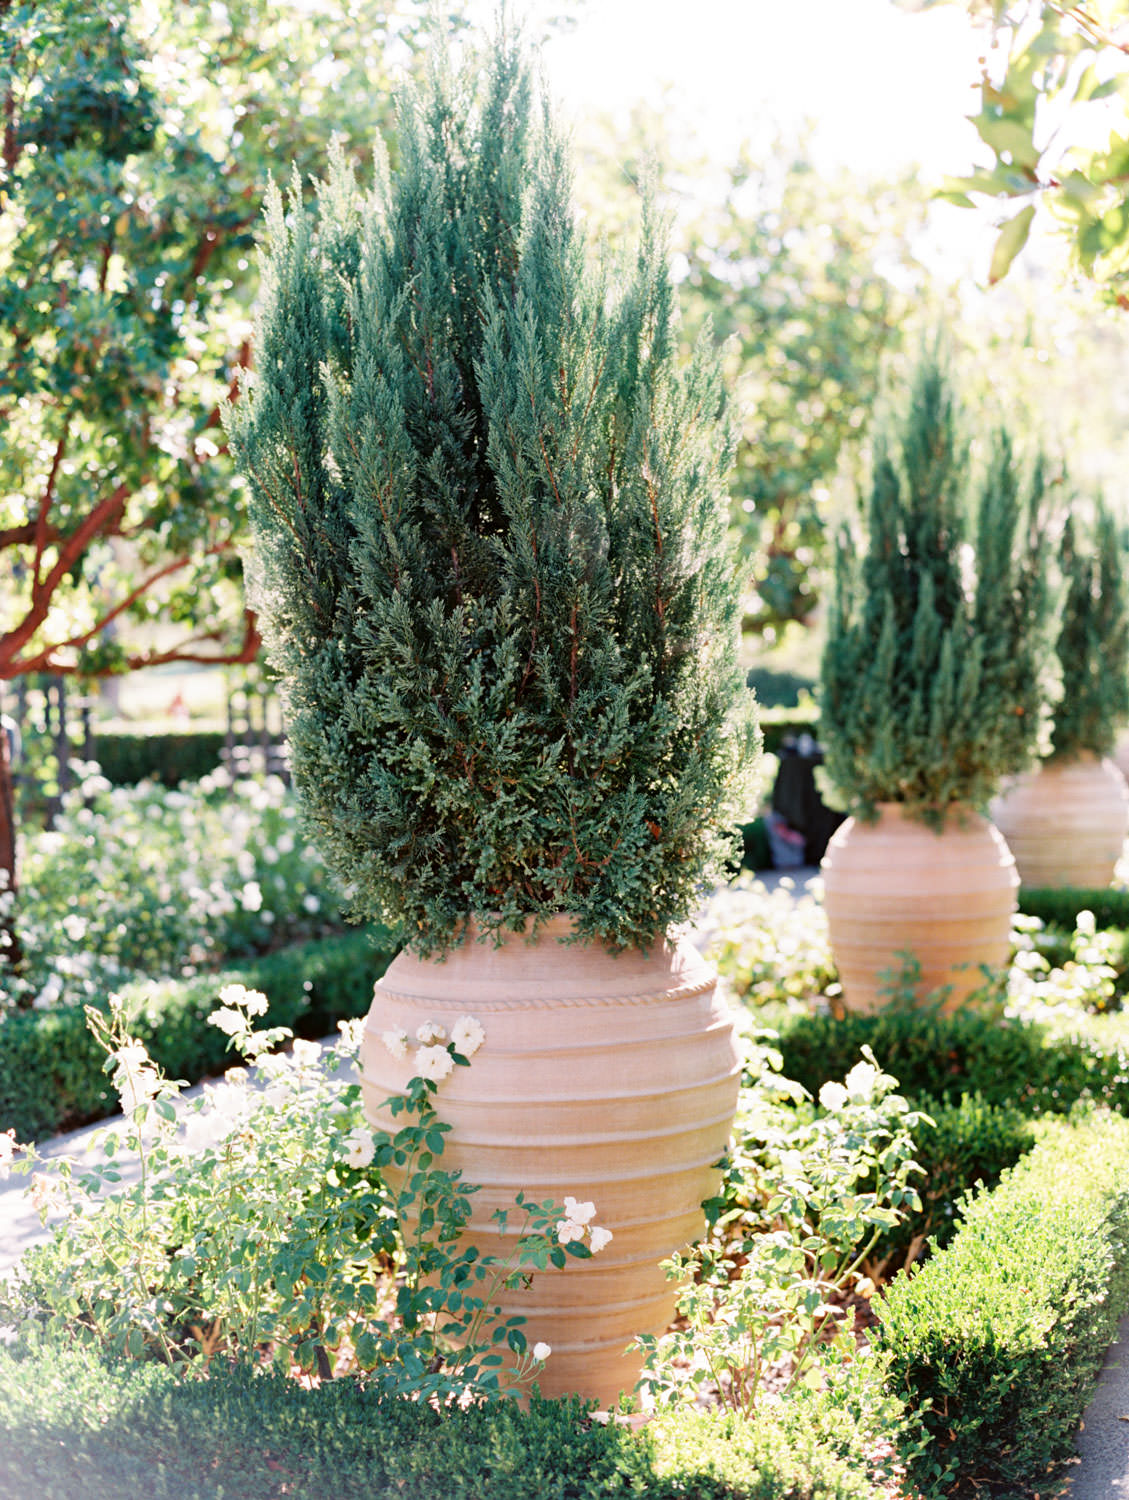 Rose garden large potted trees. Rancho Bernardo Inn Aragon lawn wedding ceremony. Film photo by Cavin Elizabeth Photography